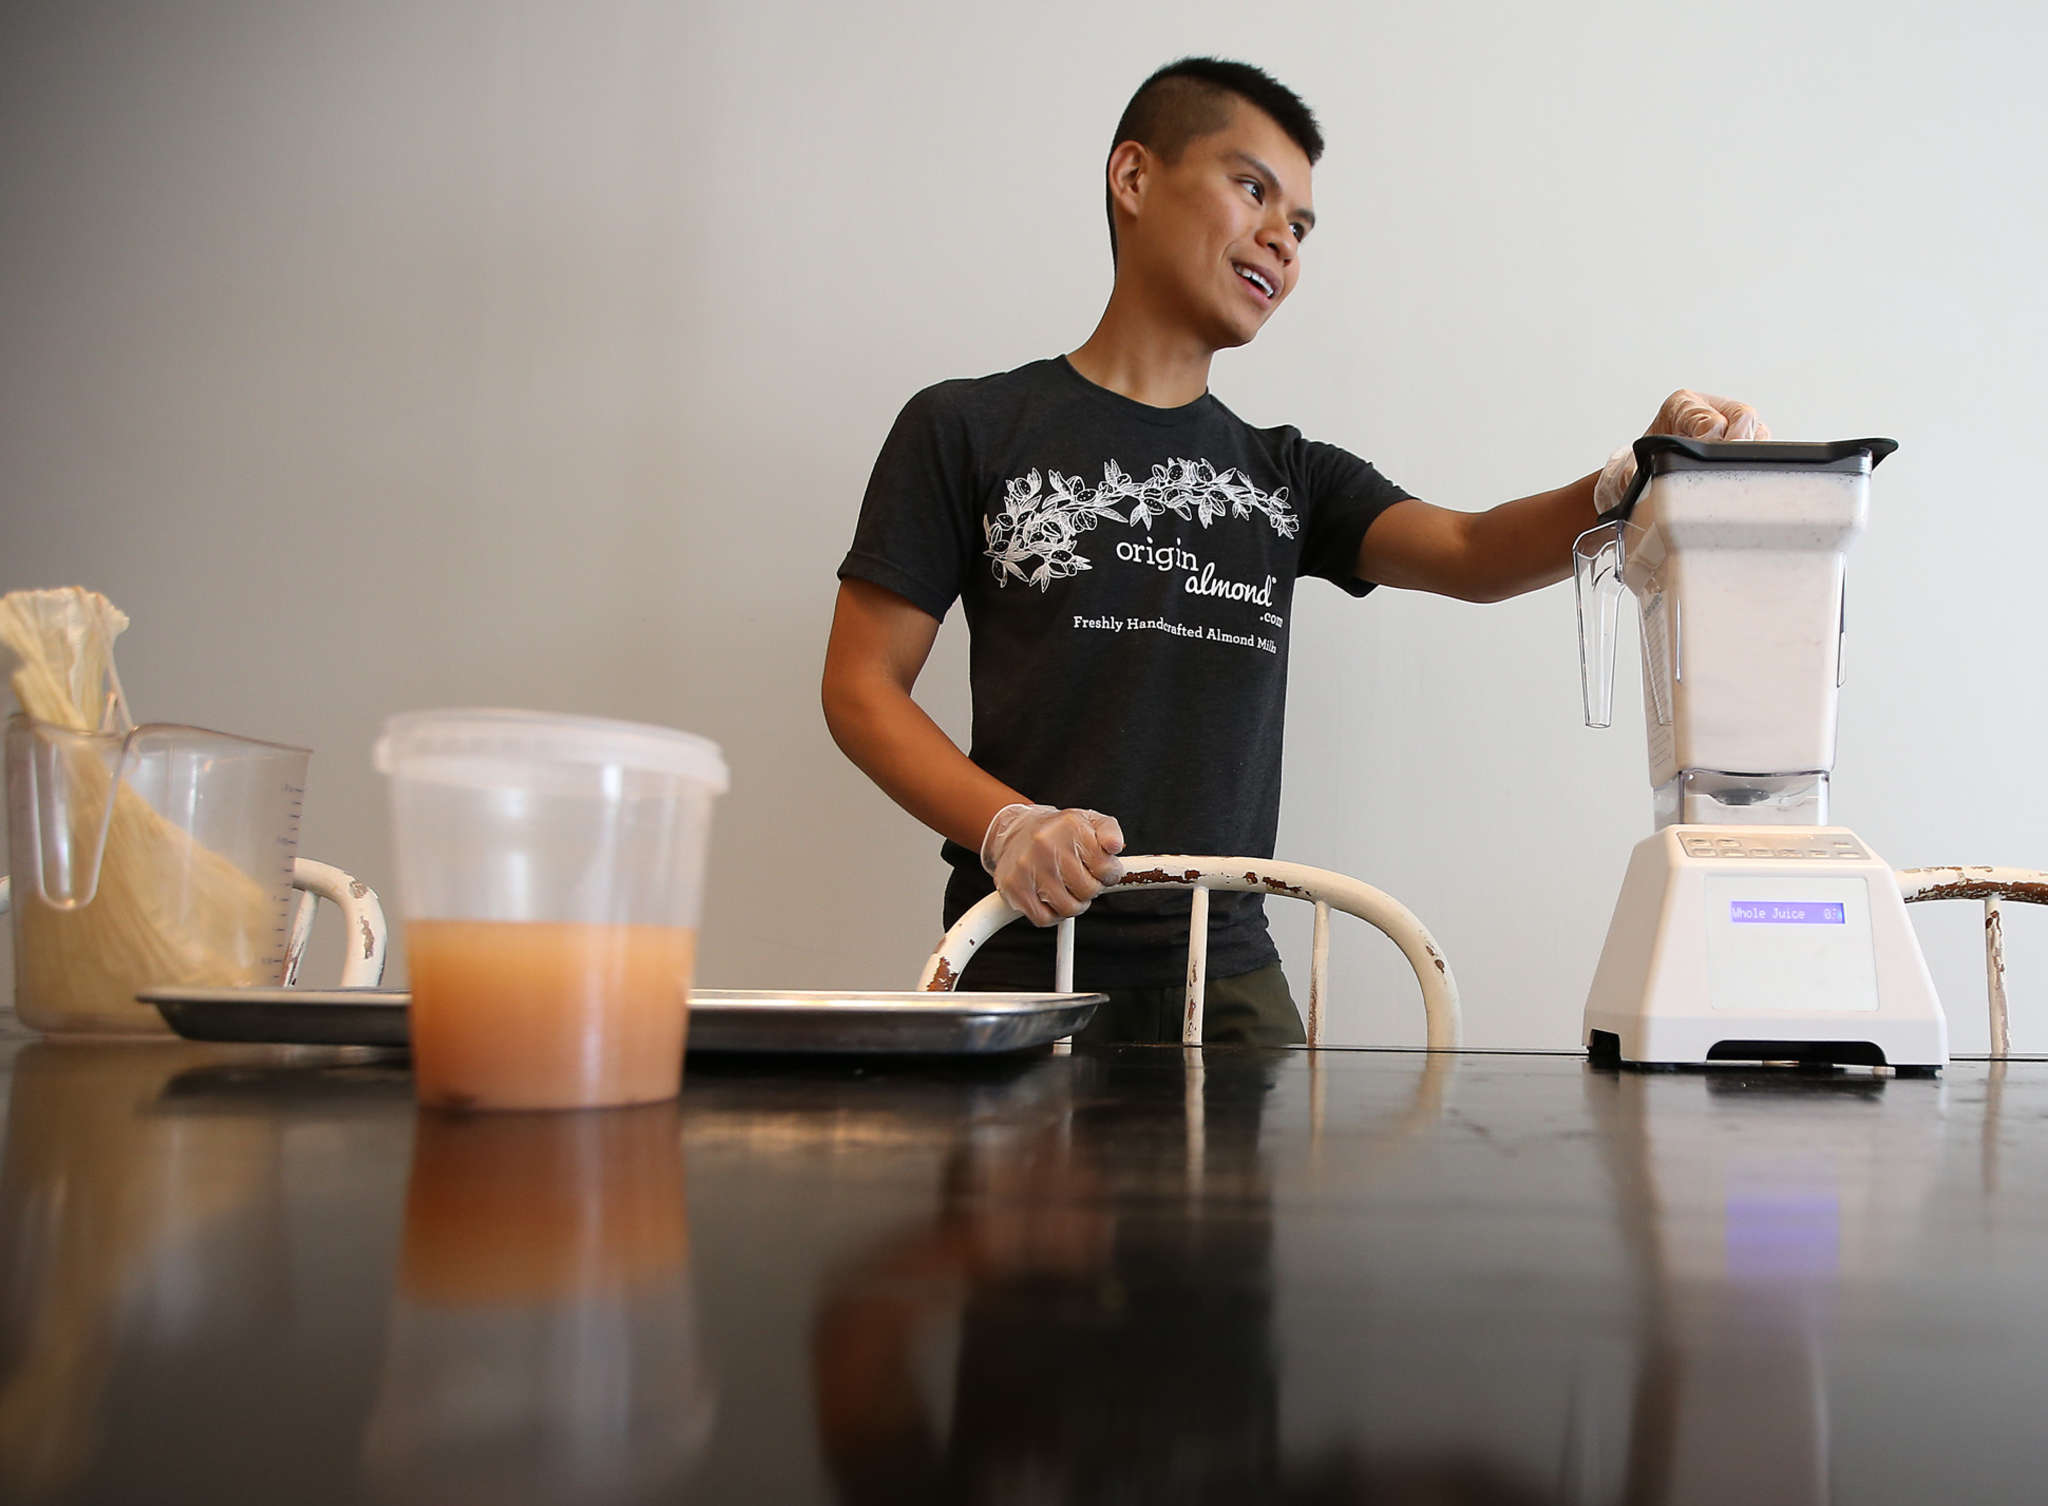 Jacob Deleon , the entrepreneur behind Origin Almond, makes an almond milk drink at Heart Beet Kitchen in Westmont. He also has Whole Foods as an outlet, among others. DAVID MAIALETTI / Staff Photographer